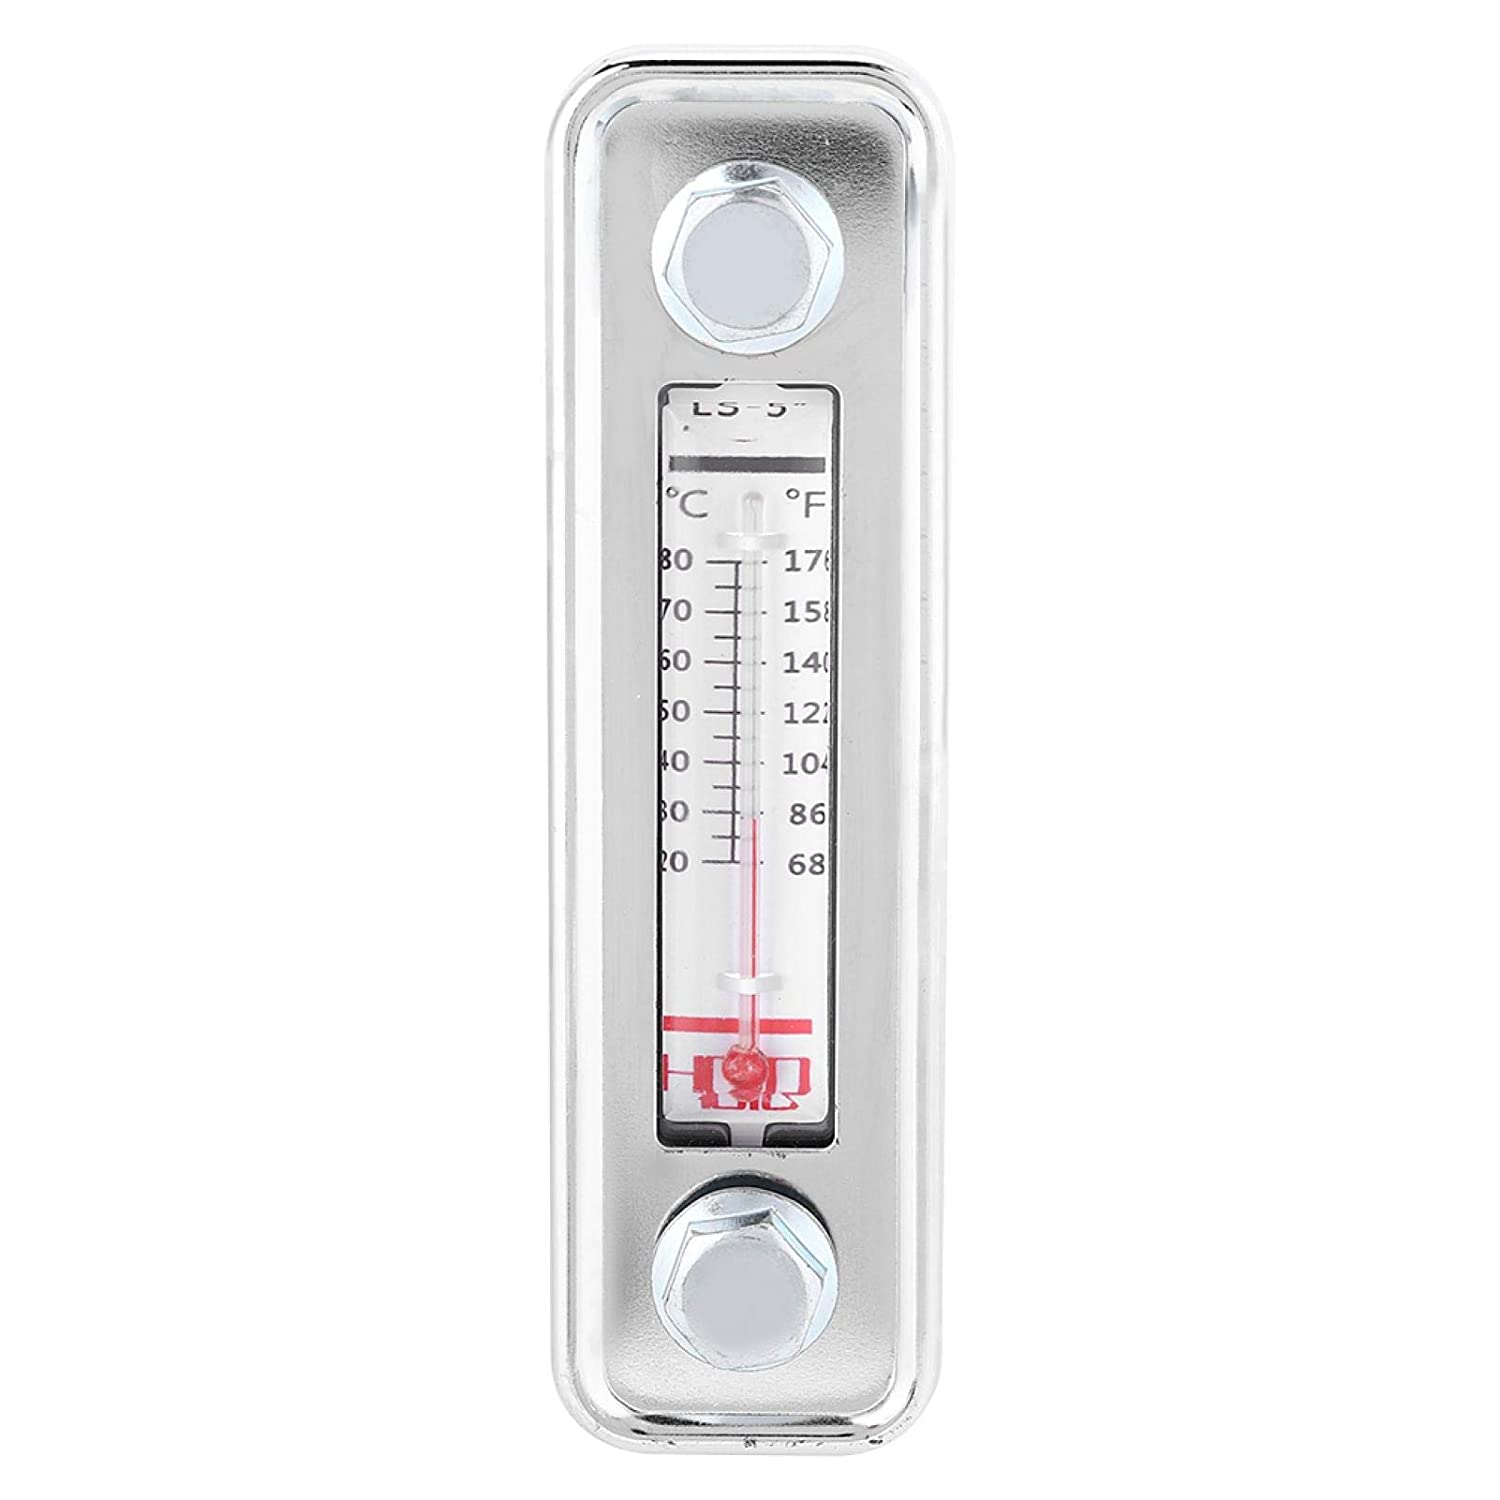 Nippon Rapid rise regular agency Level Gauge with Thermometer Intuitive Displ Liquid